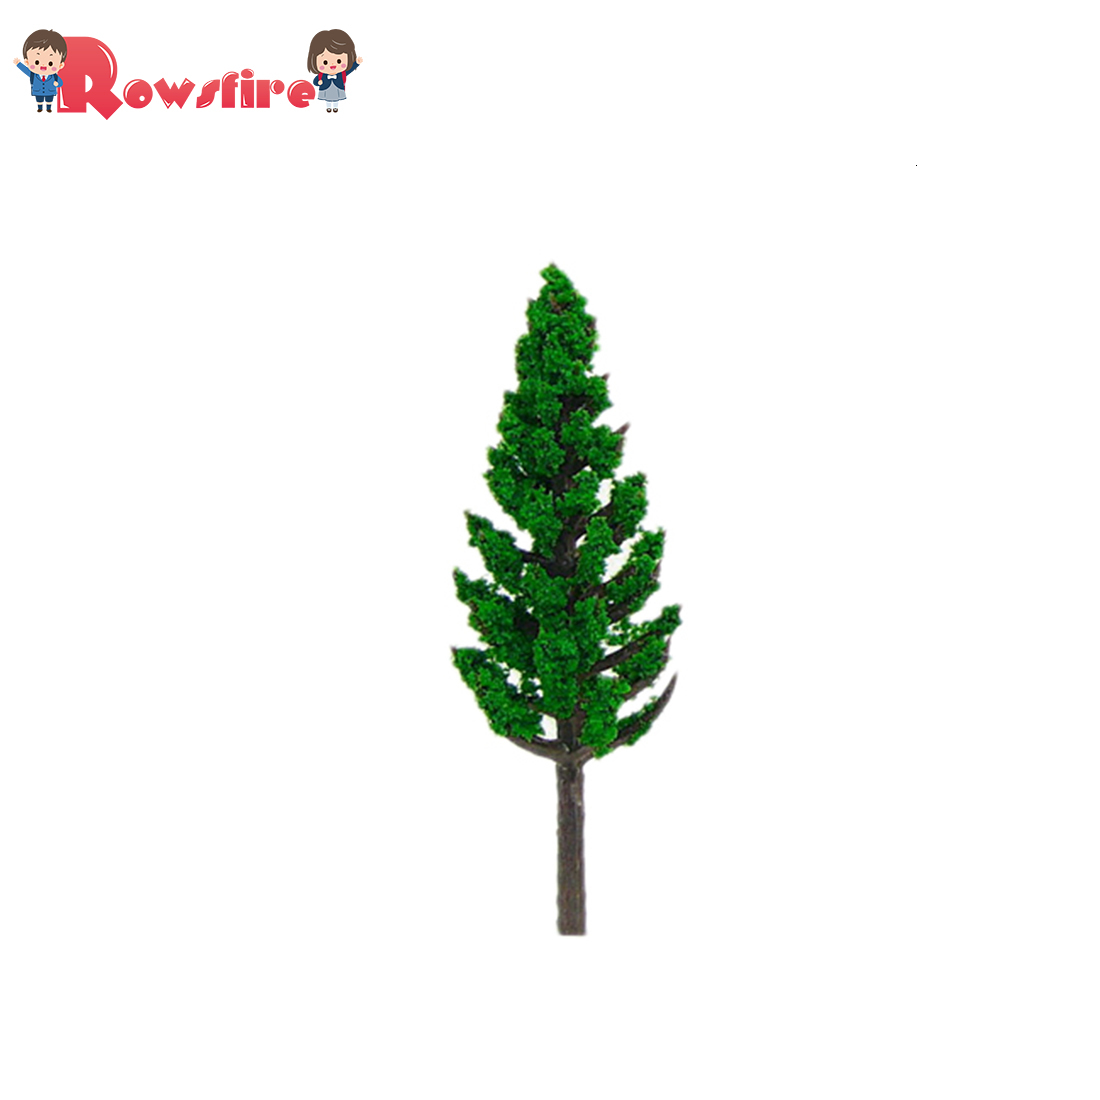 20Pcs 3.8/4.8/5.8/6.8/7.8/8.5/9.5/11/13/15/16cm Height Pine Tree Model Sand Table Scenery Building For Ho 1:85 Scale Toy Train